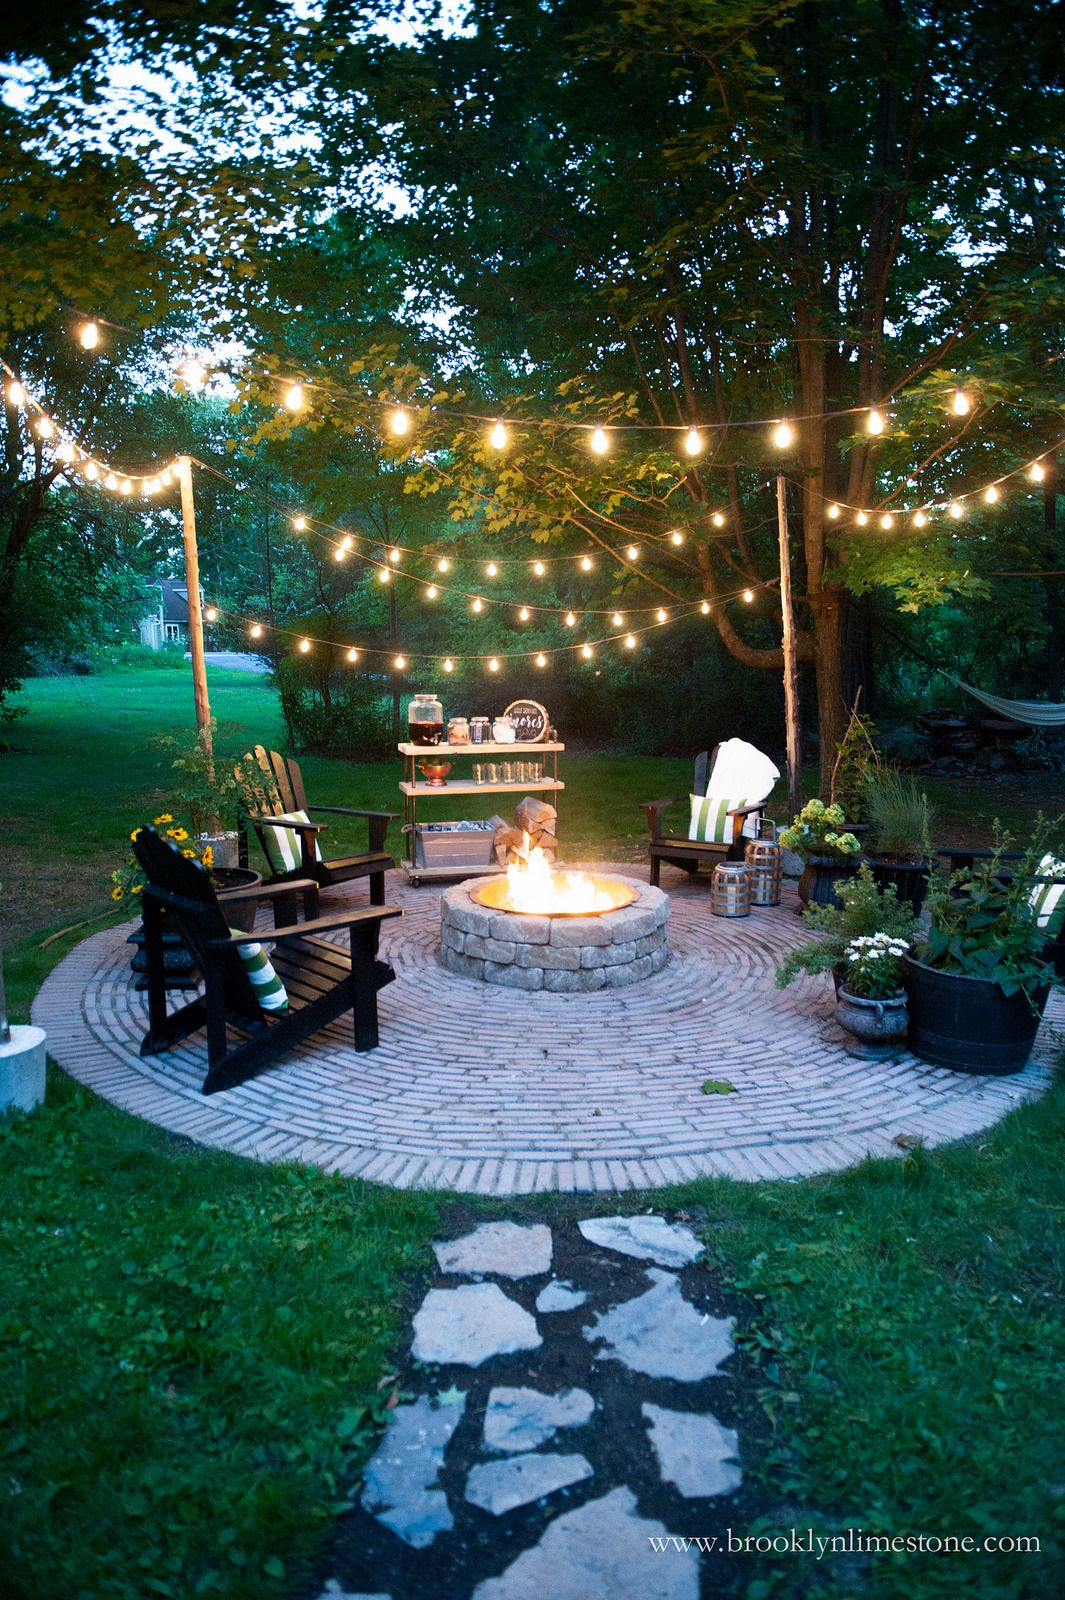 Firepit Patio Country Cottage Diy Circular Outdoor Entertaining Space Backyard Inspiration Backyard Landscaping Backyard